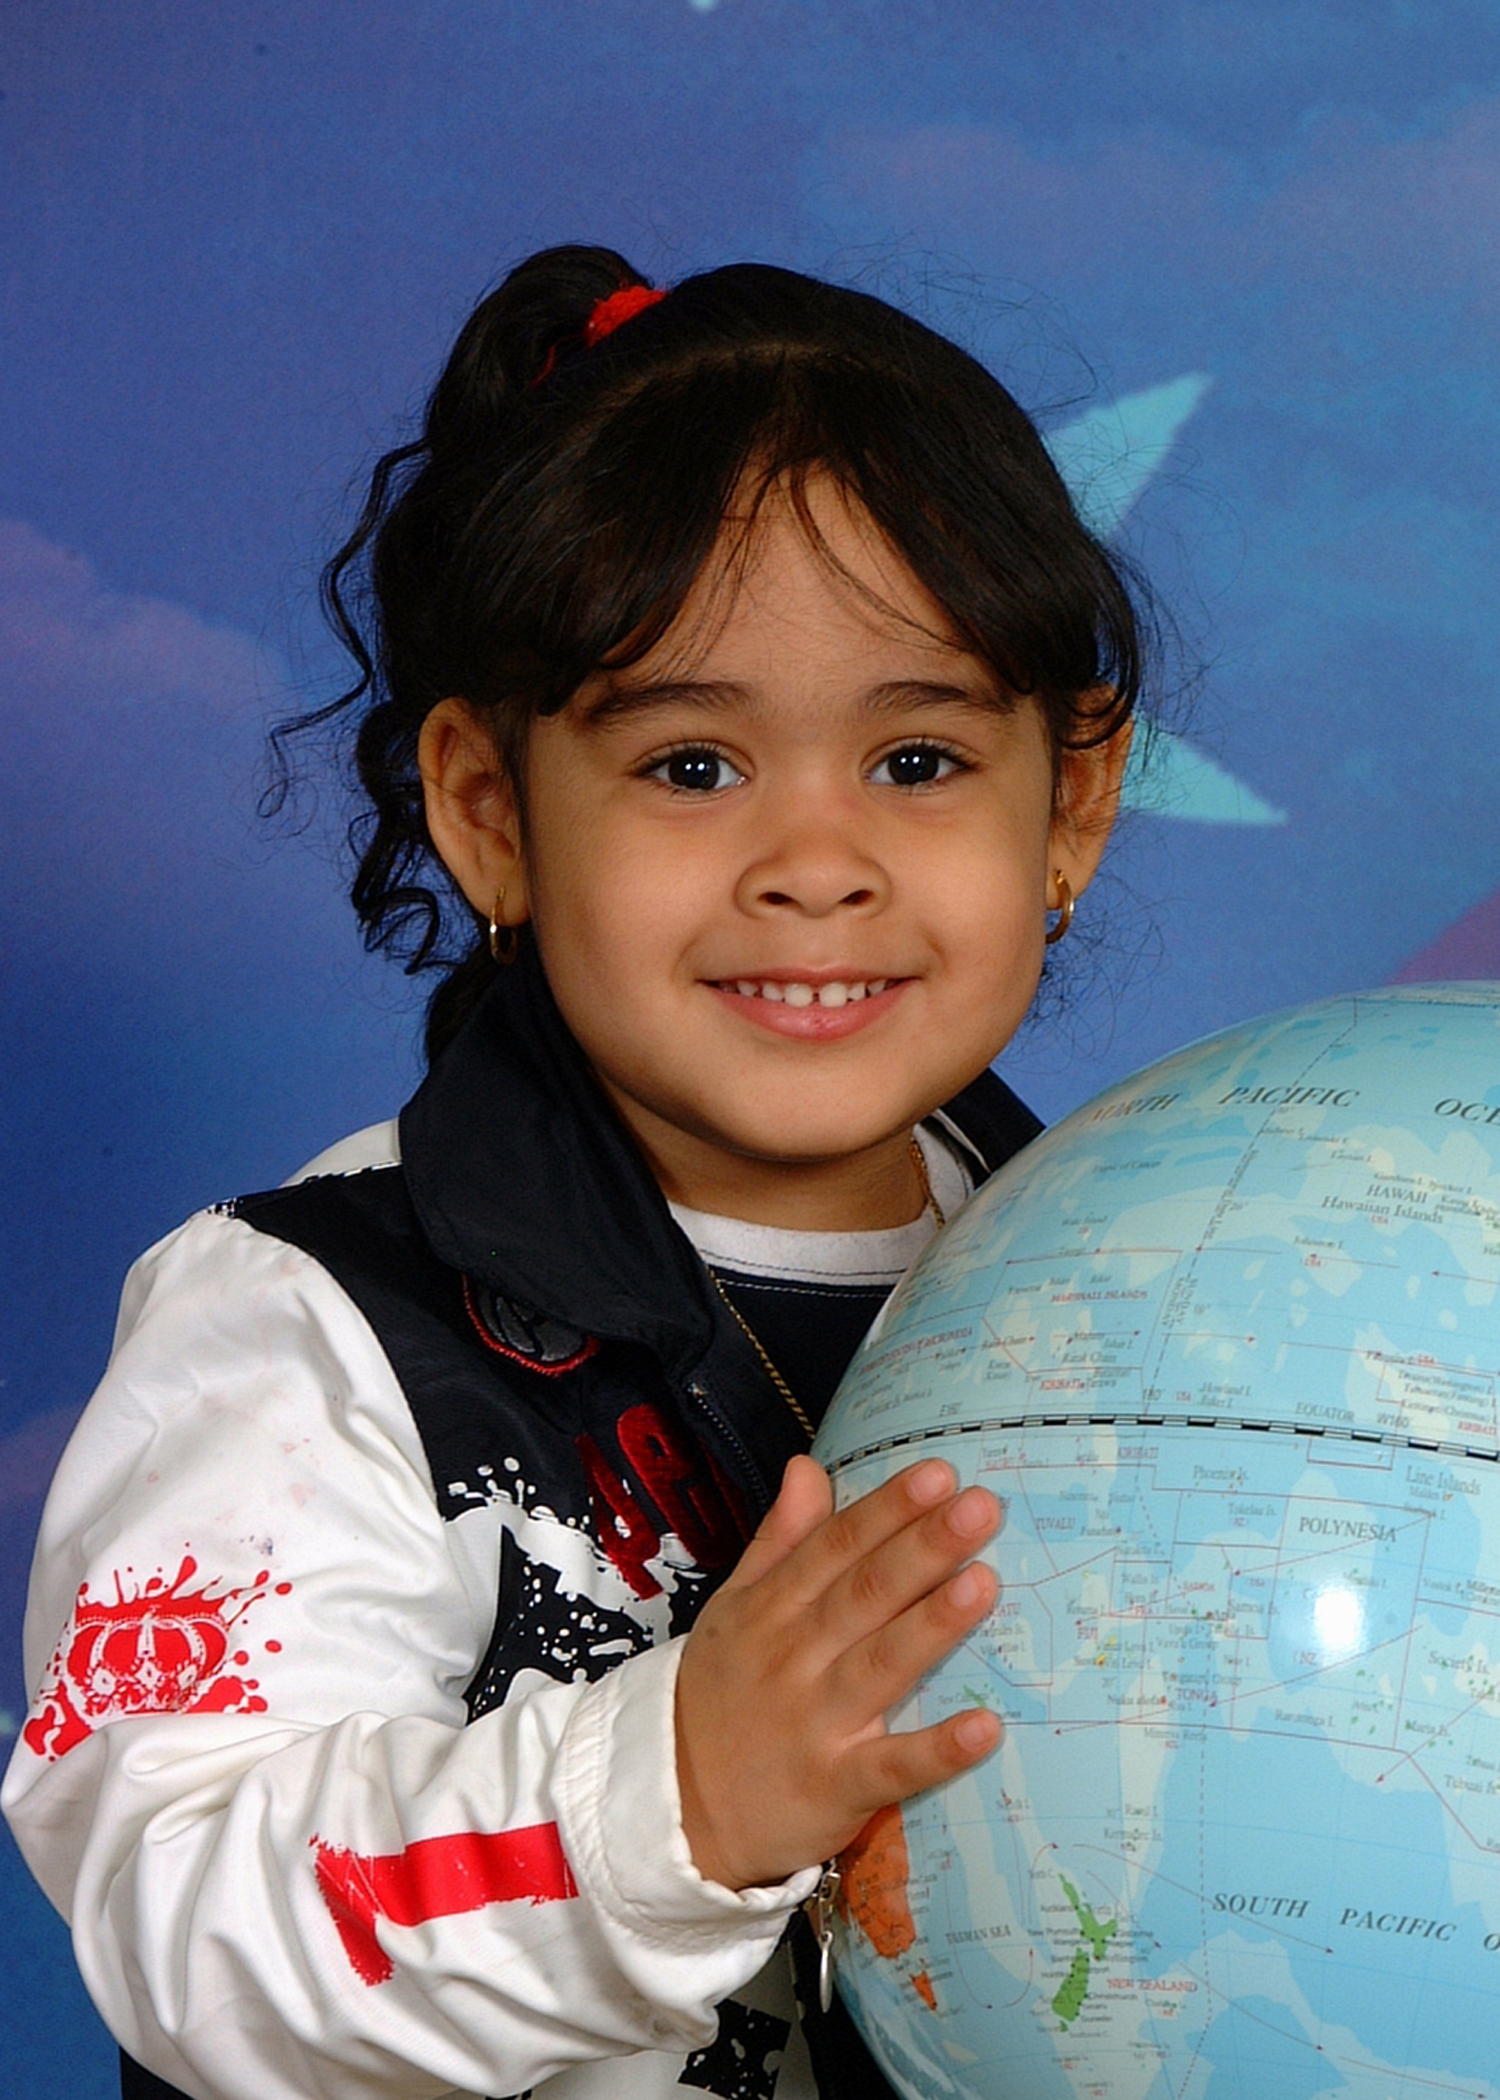 professional photography services  affordable and reliable nyc doe vendor company for school